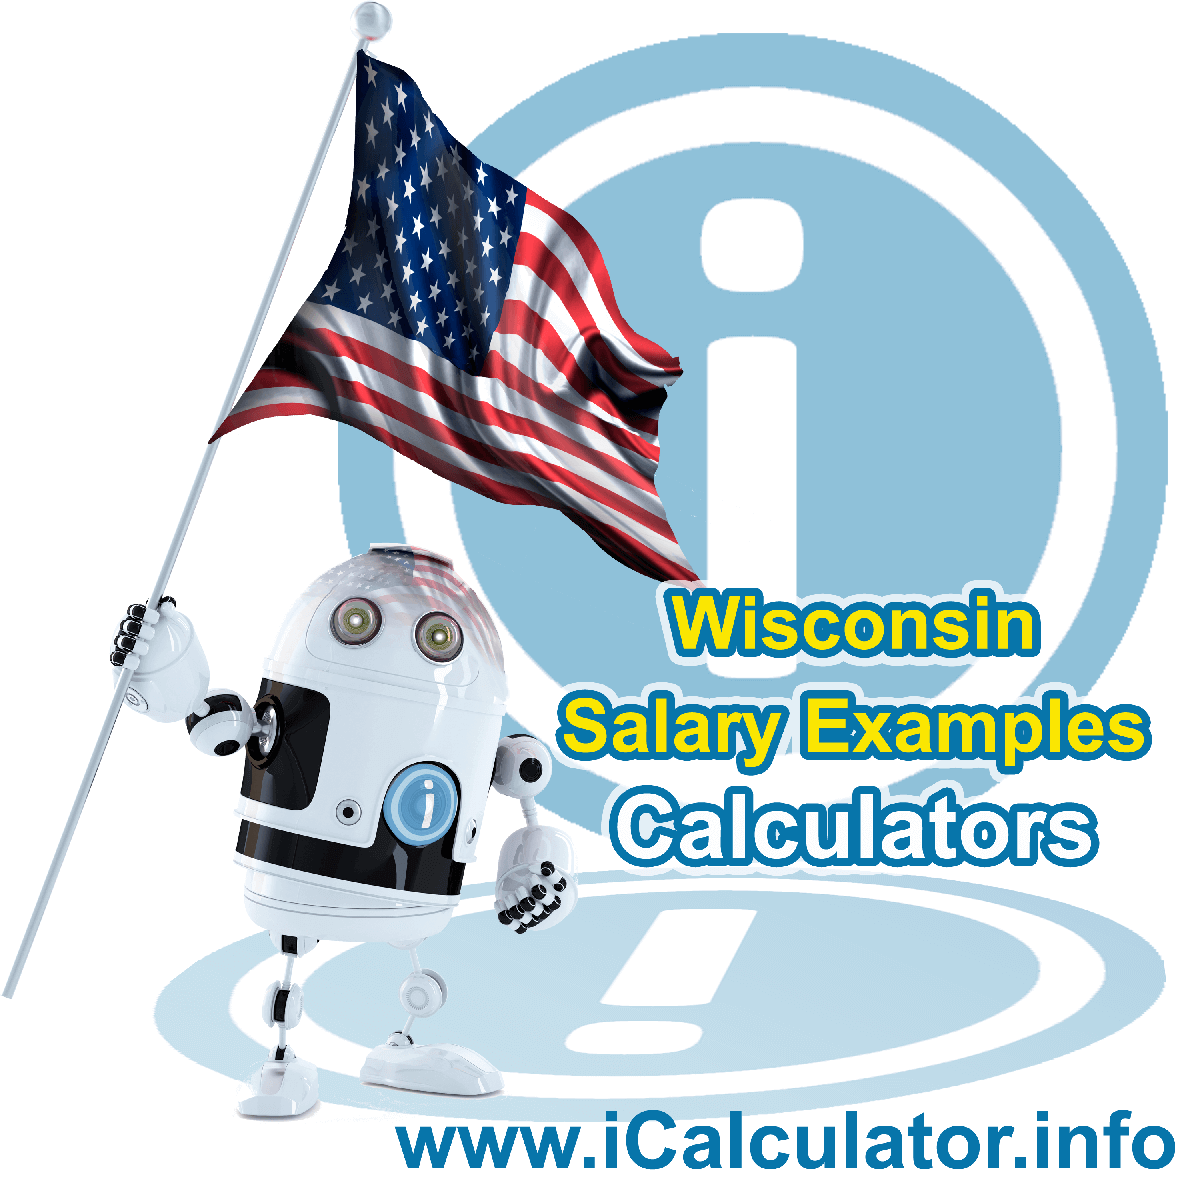 Wisconsin Salary Example for $10.00 in 2020 | iCalculator | $10.00 salary example for employee and employer paying Wisconsin State tincome taxes. Detailed salary after tax calculation including Wisconsin State Tax, Federal State Tax, Medicare Deductions, Social Security, Capital Gains and other income tax and salary deductions complete with supporting Wisconsin state tax tables